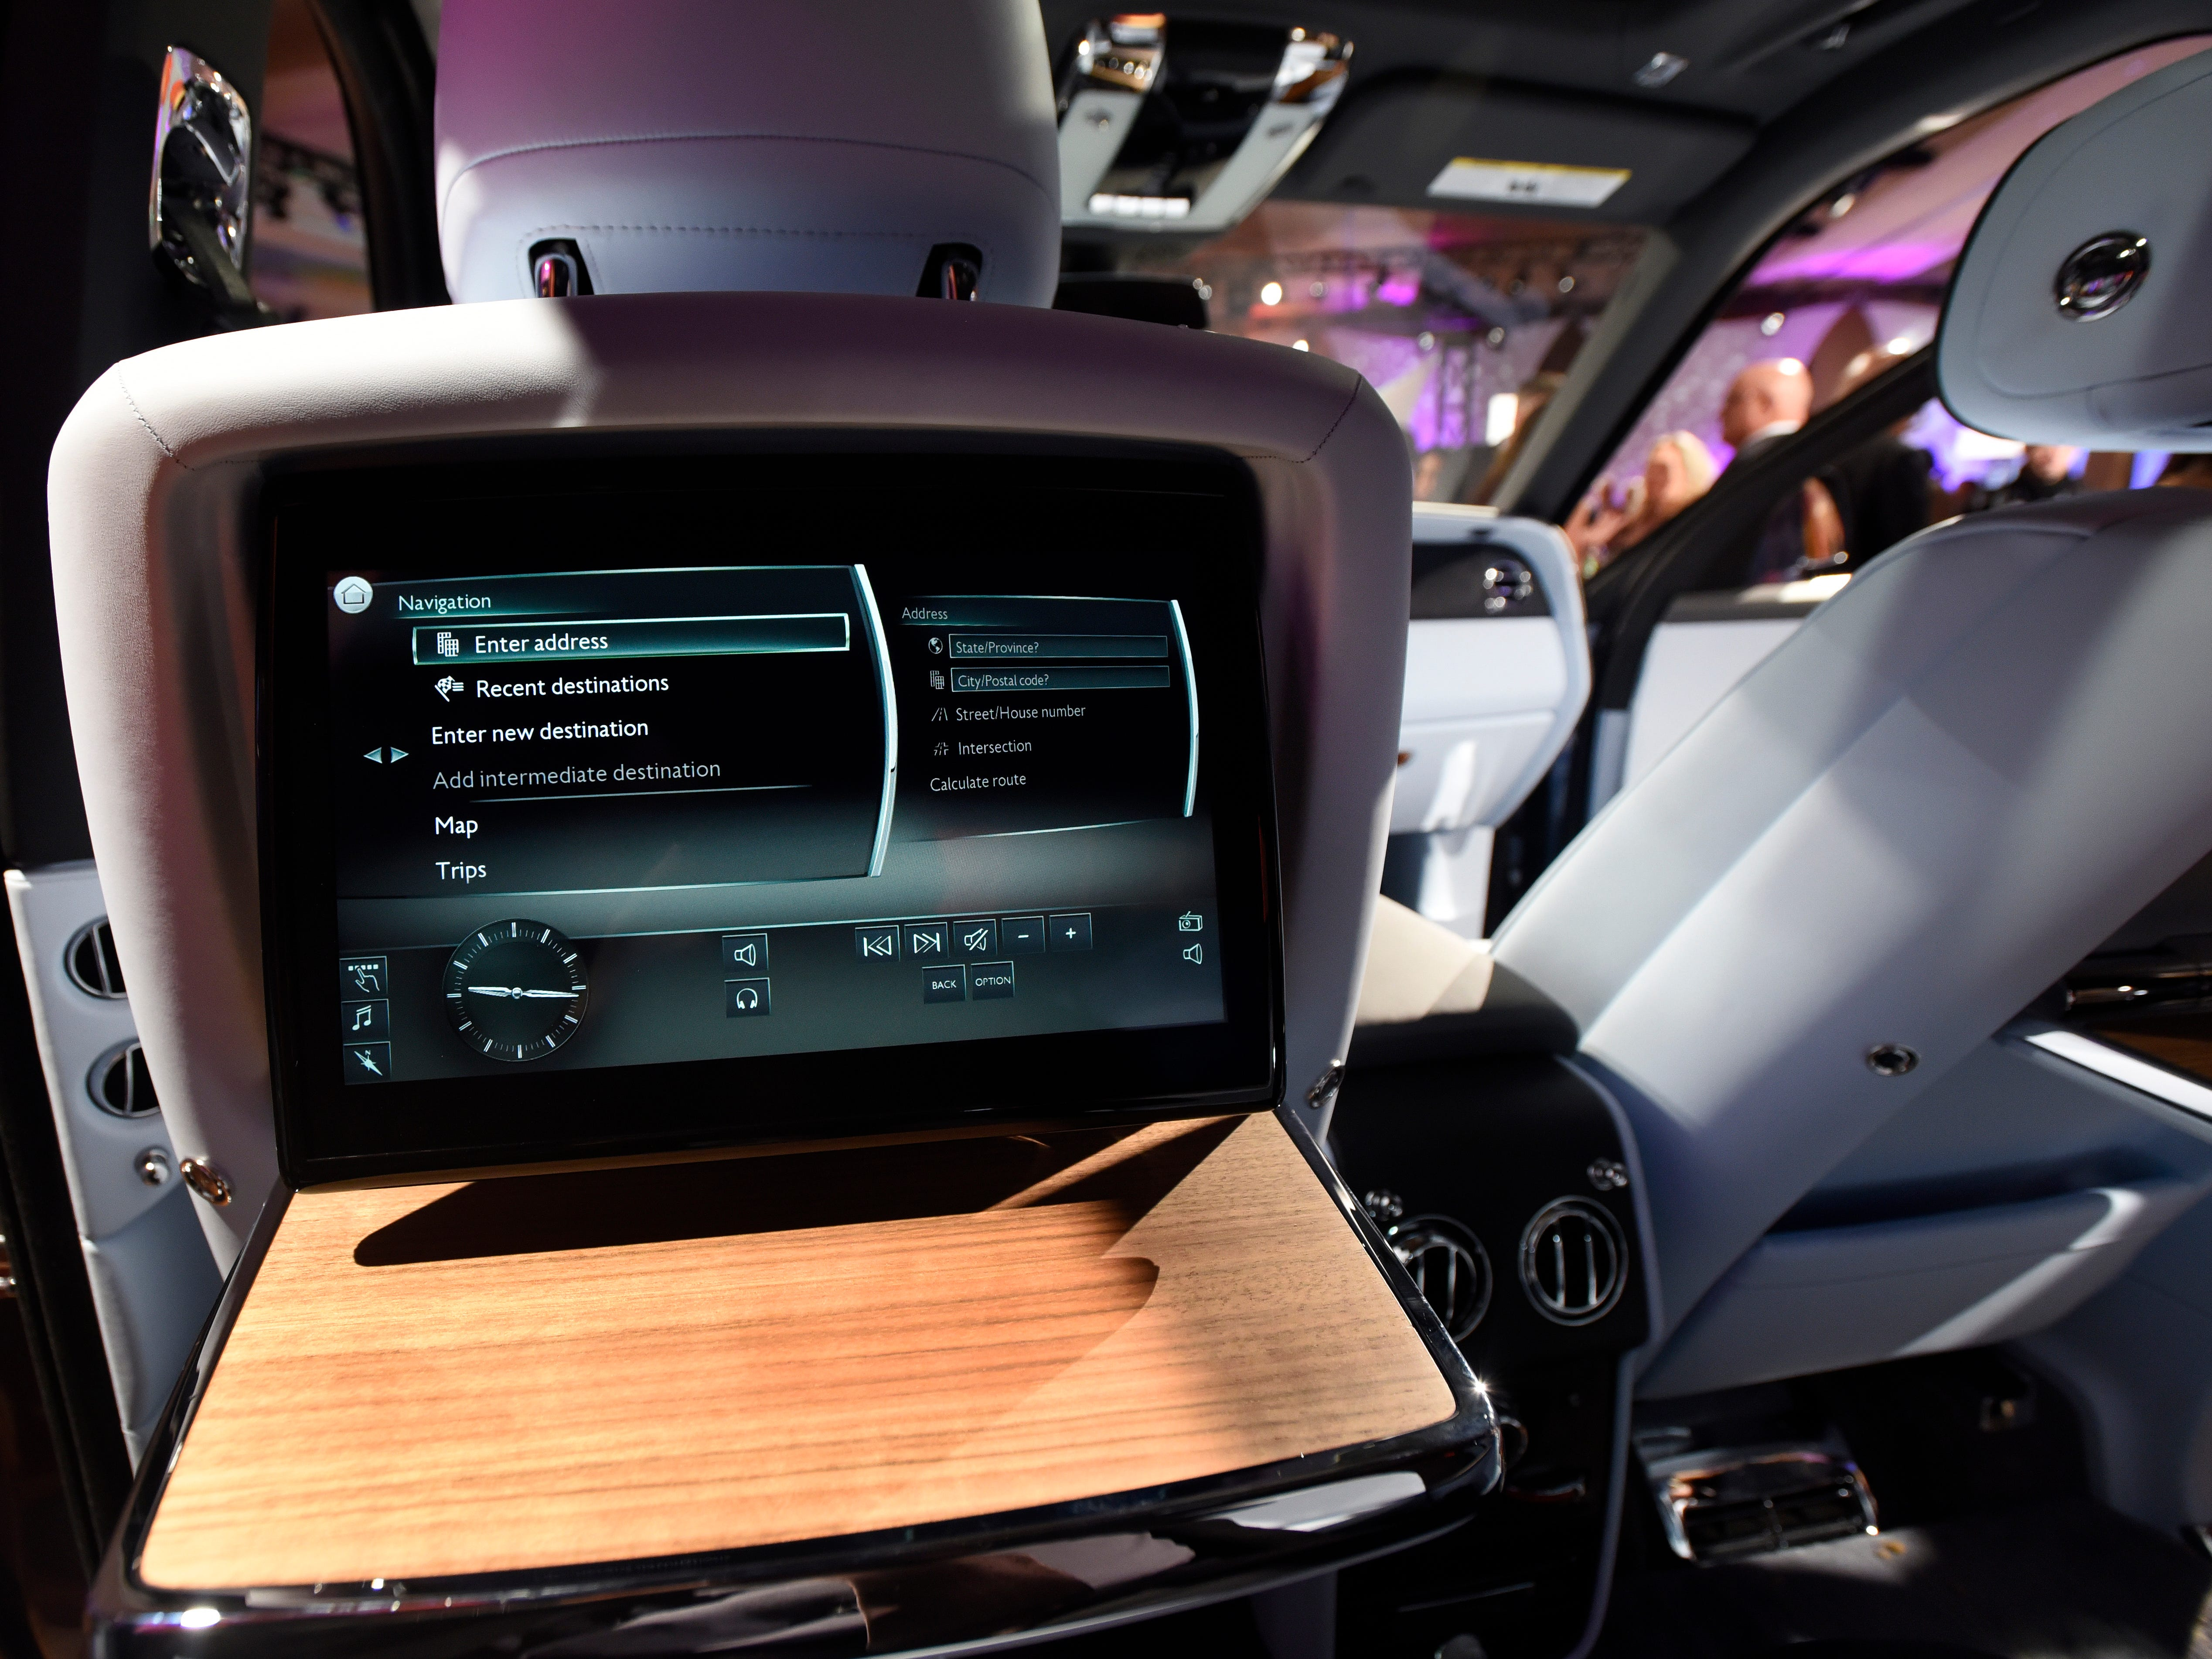 The seat back of the Rolls-Royce Cullinan SUV has a tray table and an infotainment dashboard accessible to passengers .